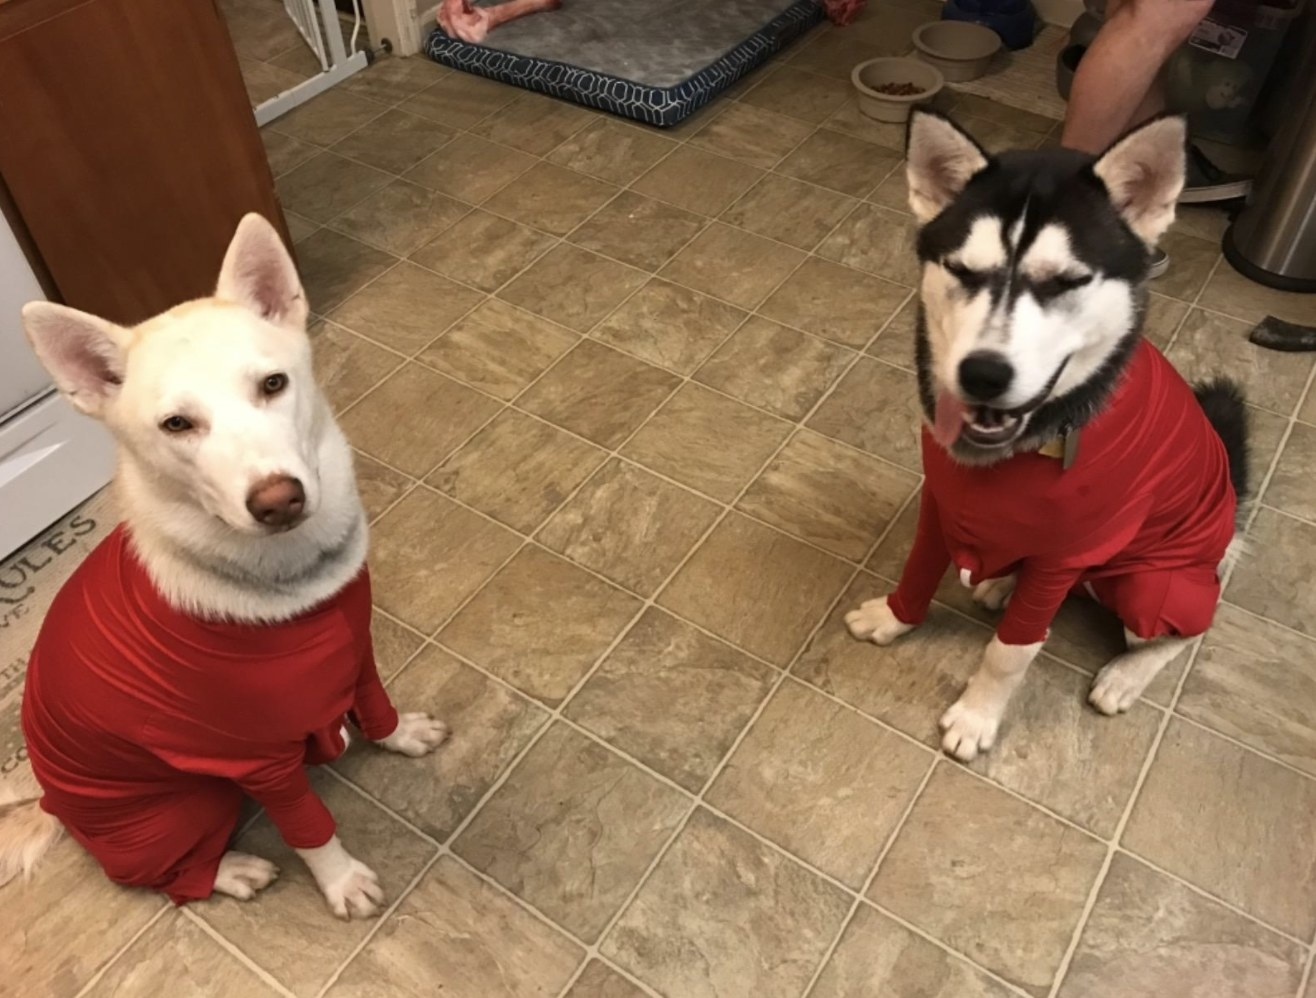 Two dogs wearing red bodysuits